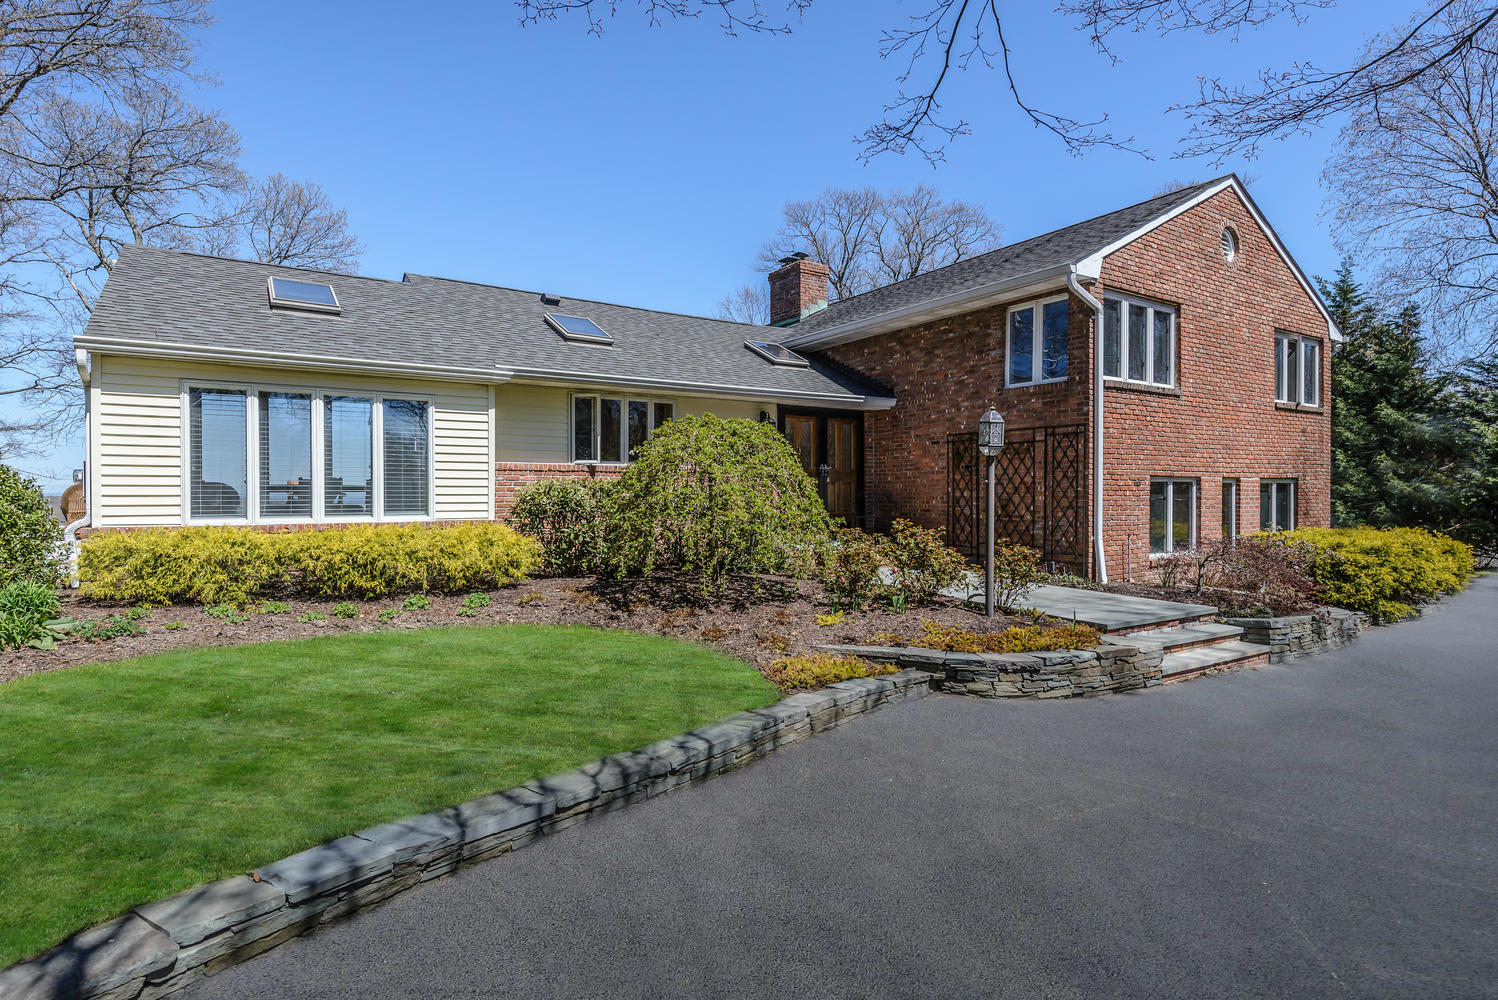 Maison unifamiliale pour l Vente à Traditional 16 Barbara Ct Greenlawn, New York, 11740 États-Unis